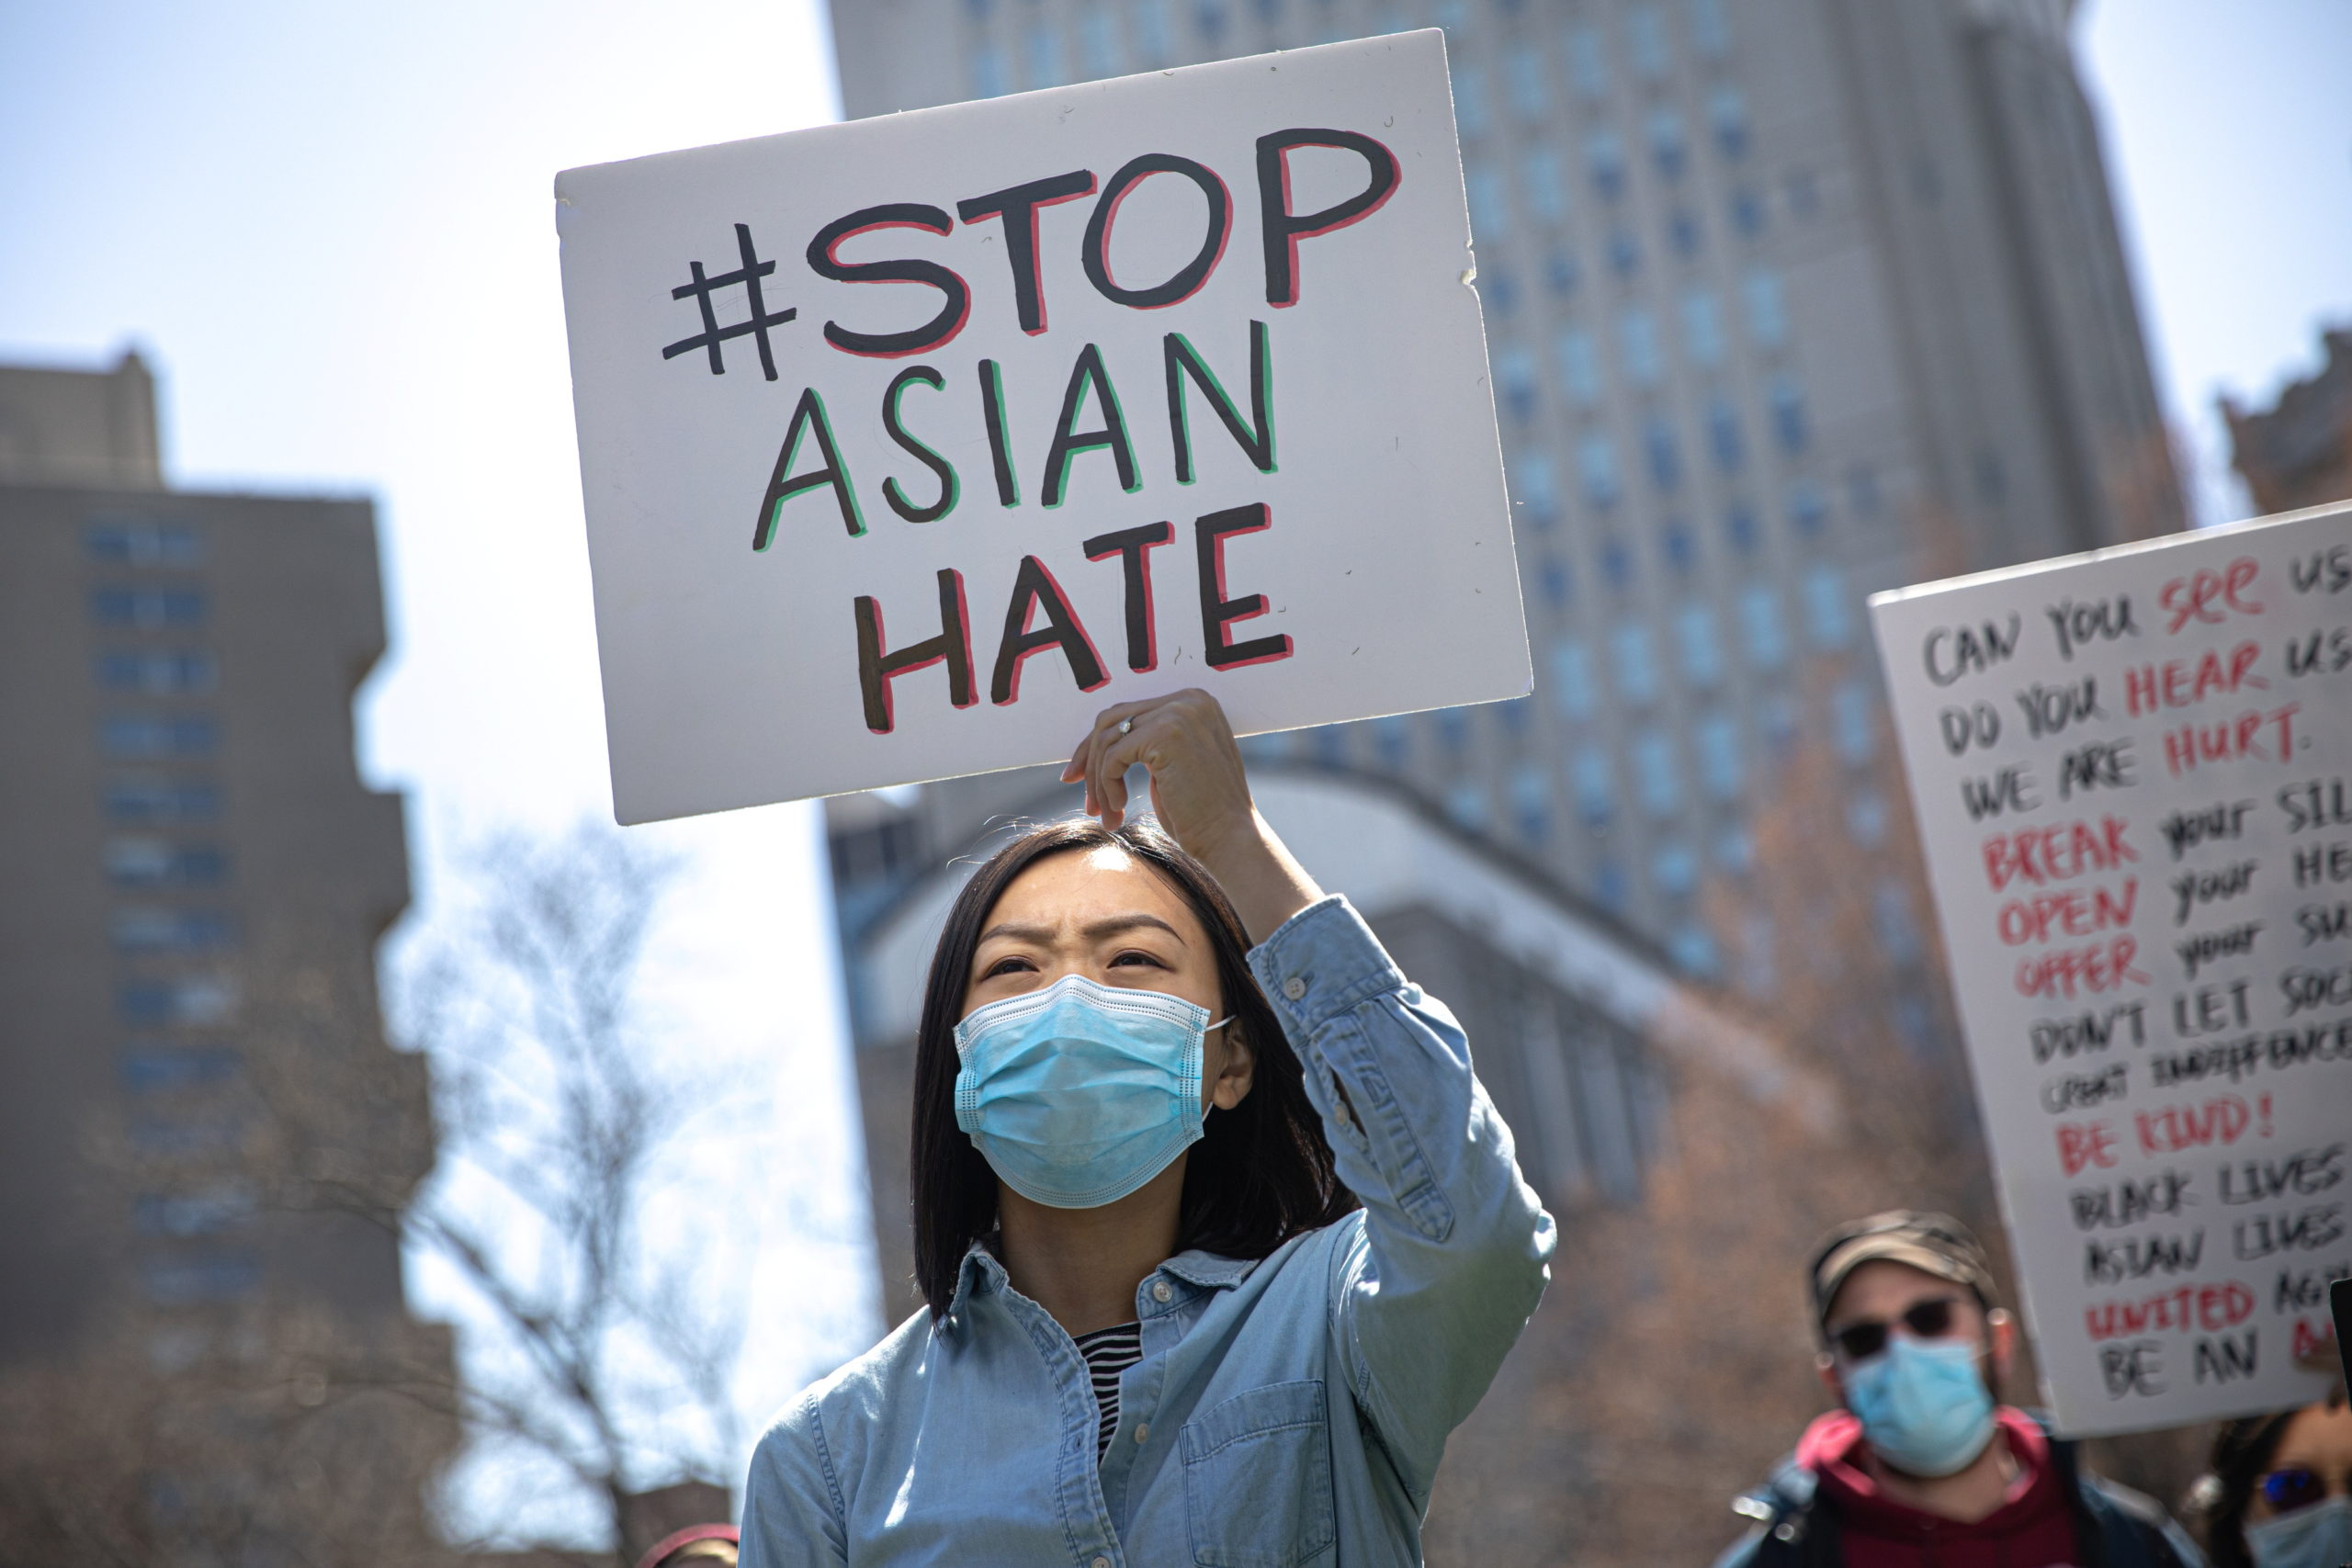 A woman holds a placard as she participates in a Stop Asian Hate rally at Columbus Park in New York City, U.S., April 3, 2021.